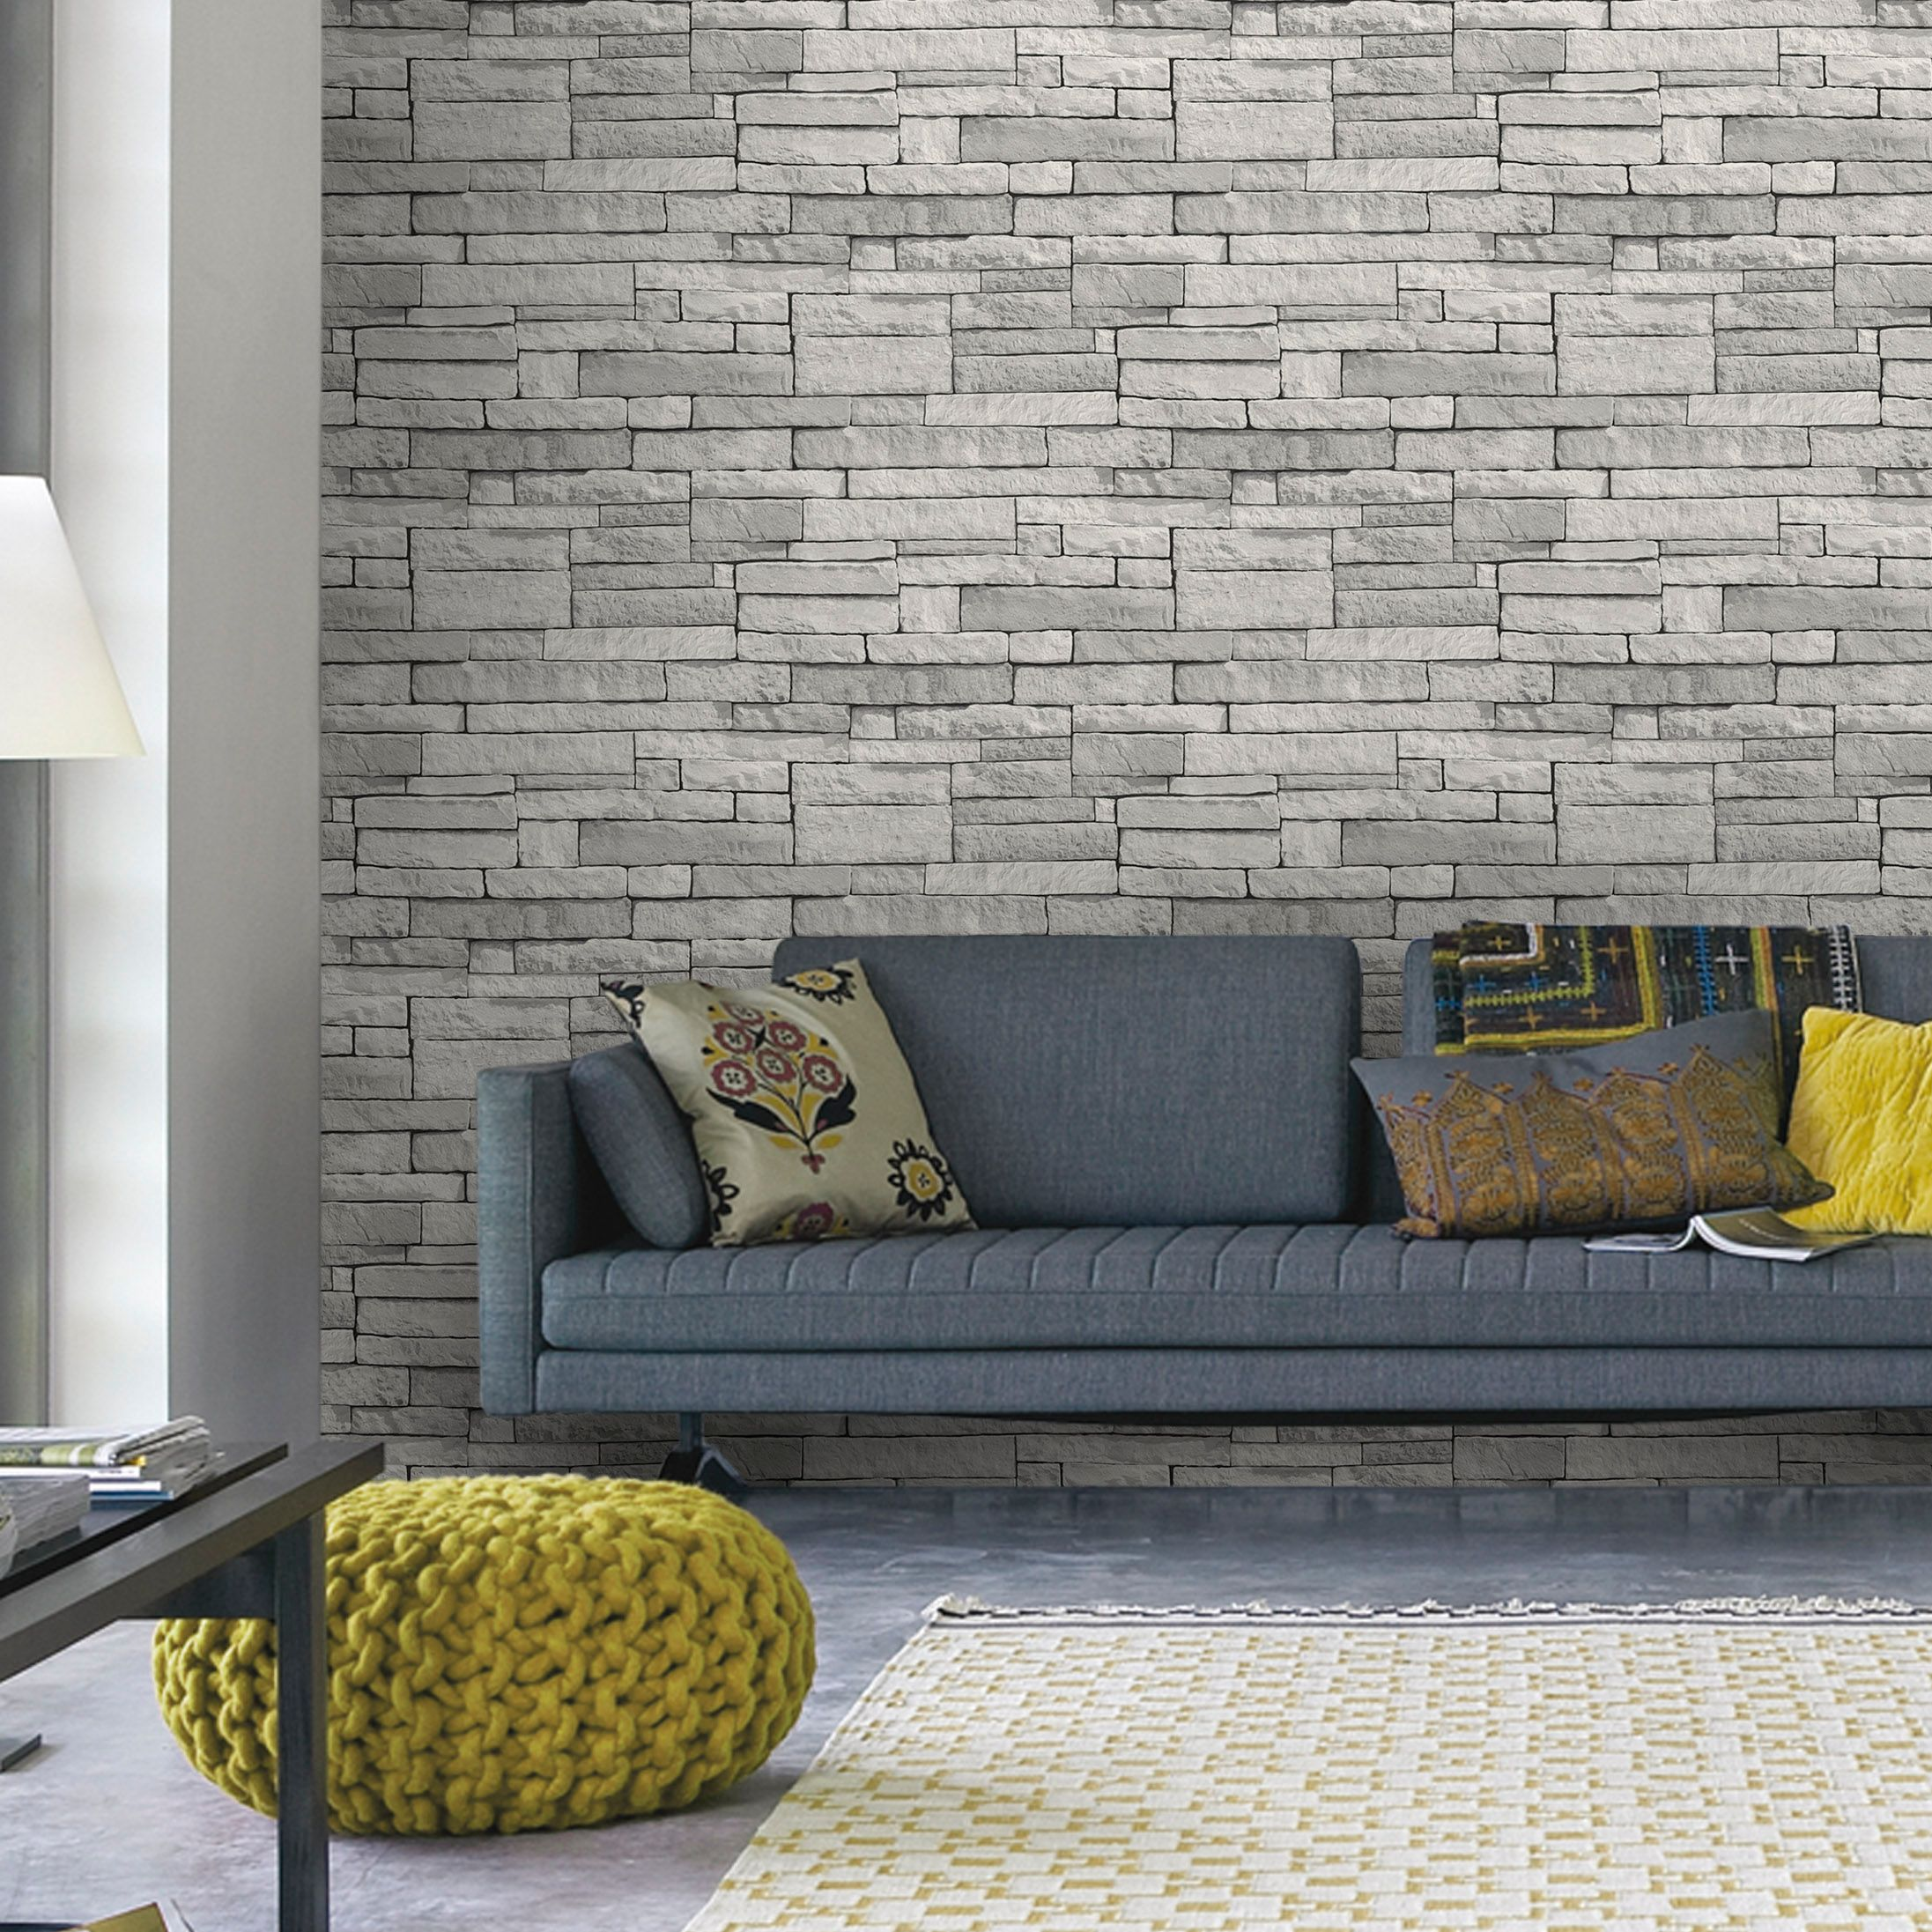 wallpaper living room wall light grey with brown couch decorating brick tile stone